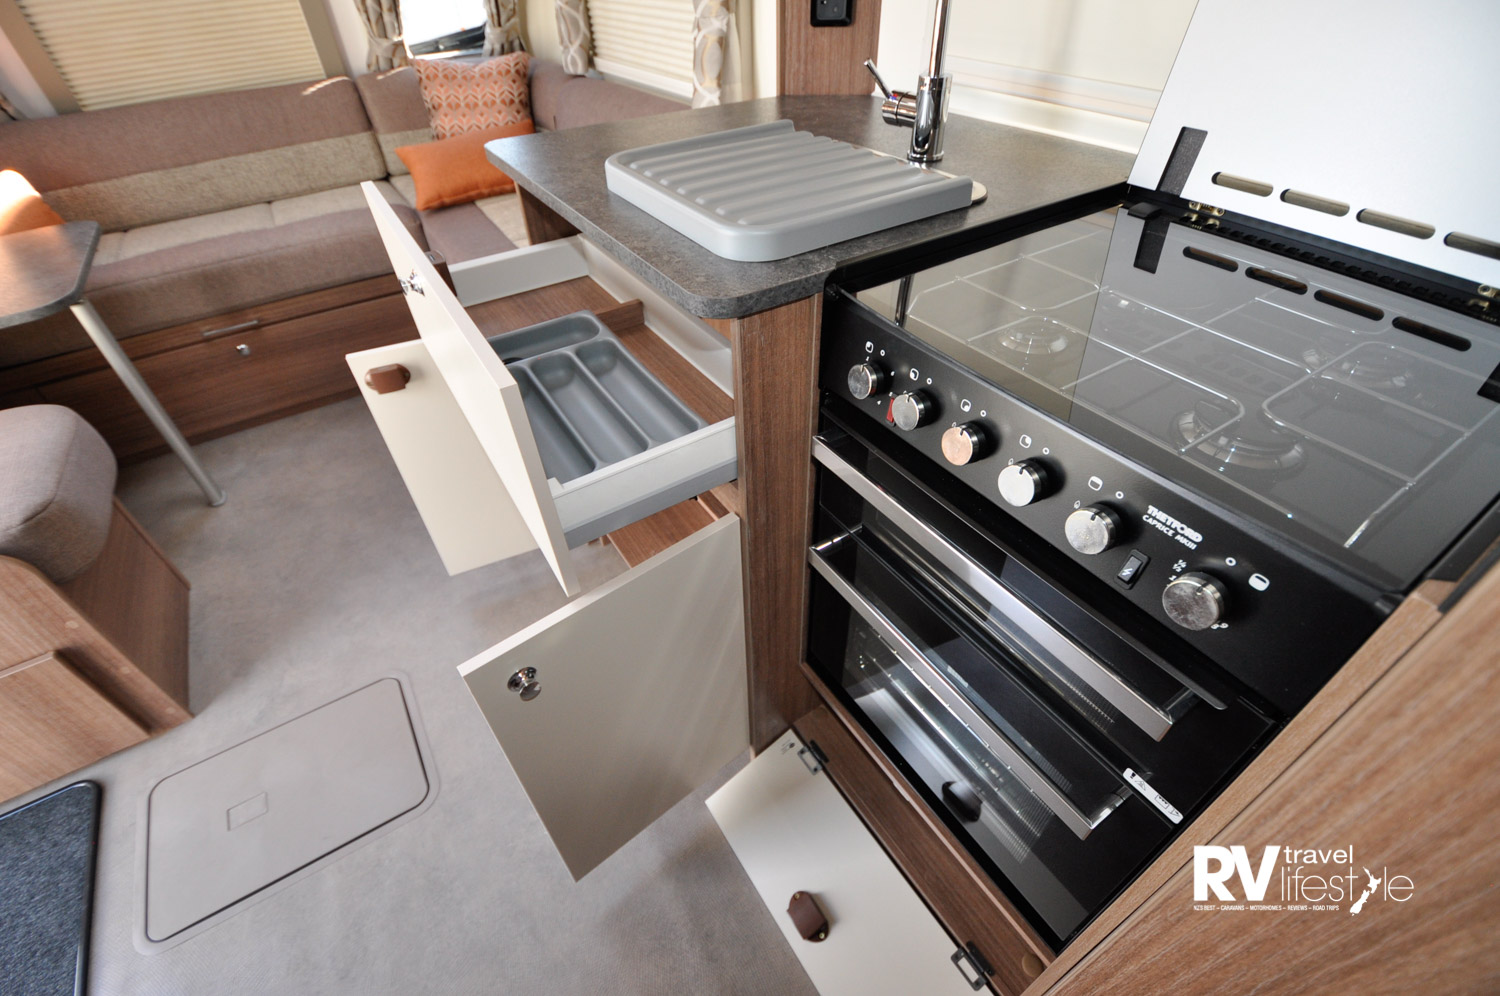 A full oven with storage underneath, four-burner hob on top with glass cover as well as a bench cover that is level with the main bench. Utility drawer and cupboards under the sink